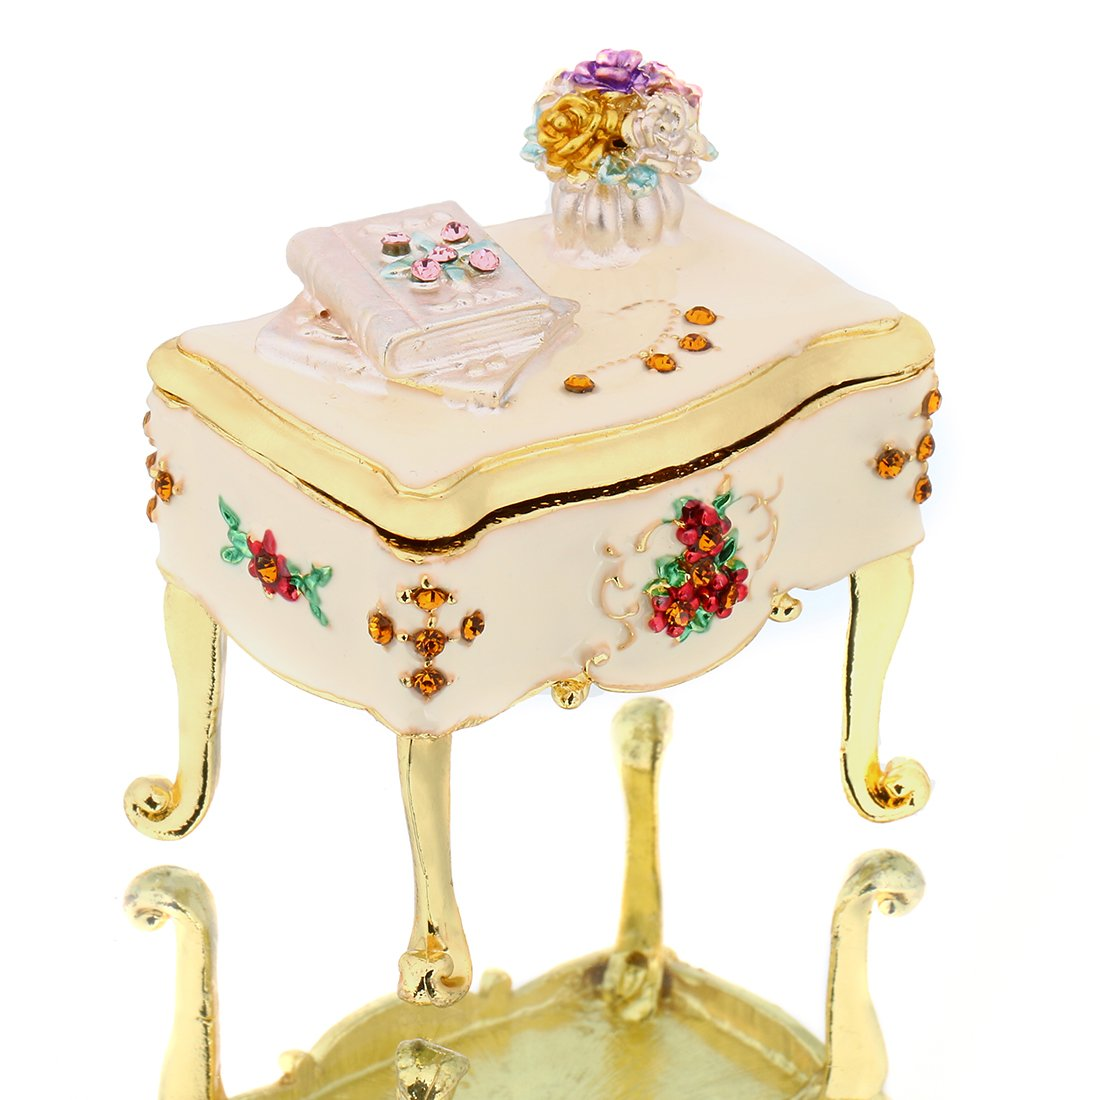 YUFENG Miniature Dresser Jeweled Trinket Box Hand-Painted Patterns Ring Holder Earring Dish Jewelry Box with Crystal (Dresser) by YUFENG